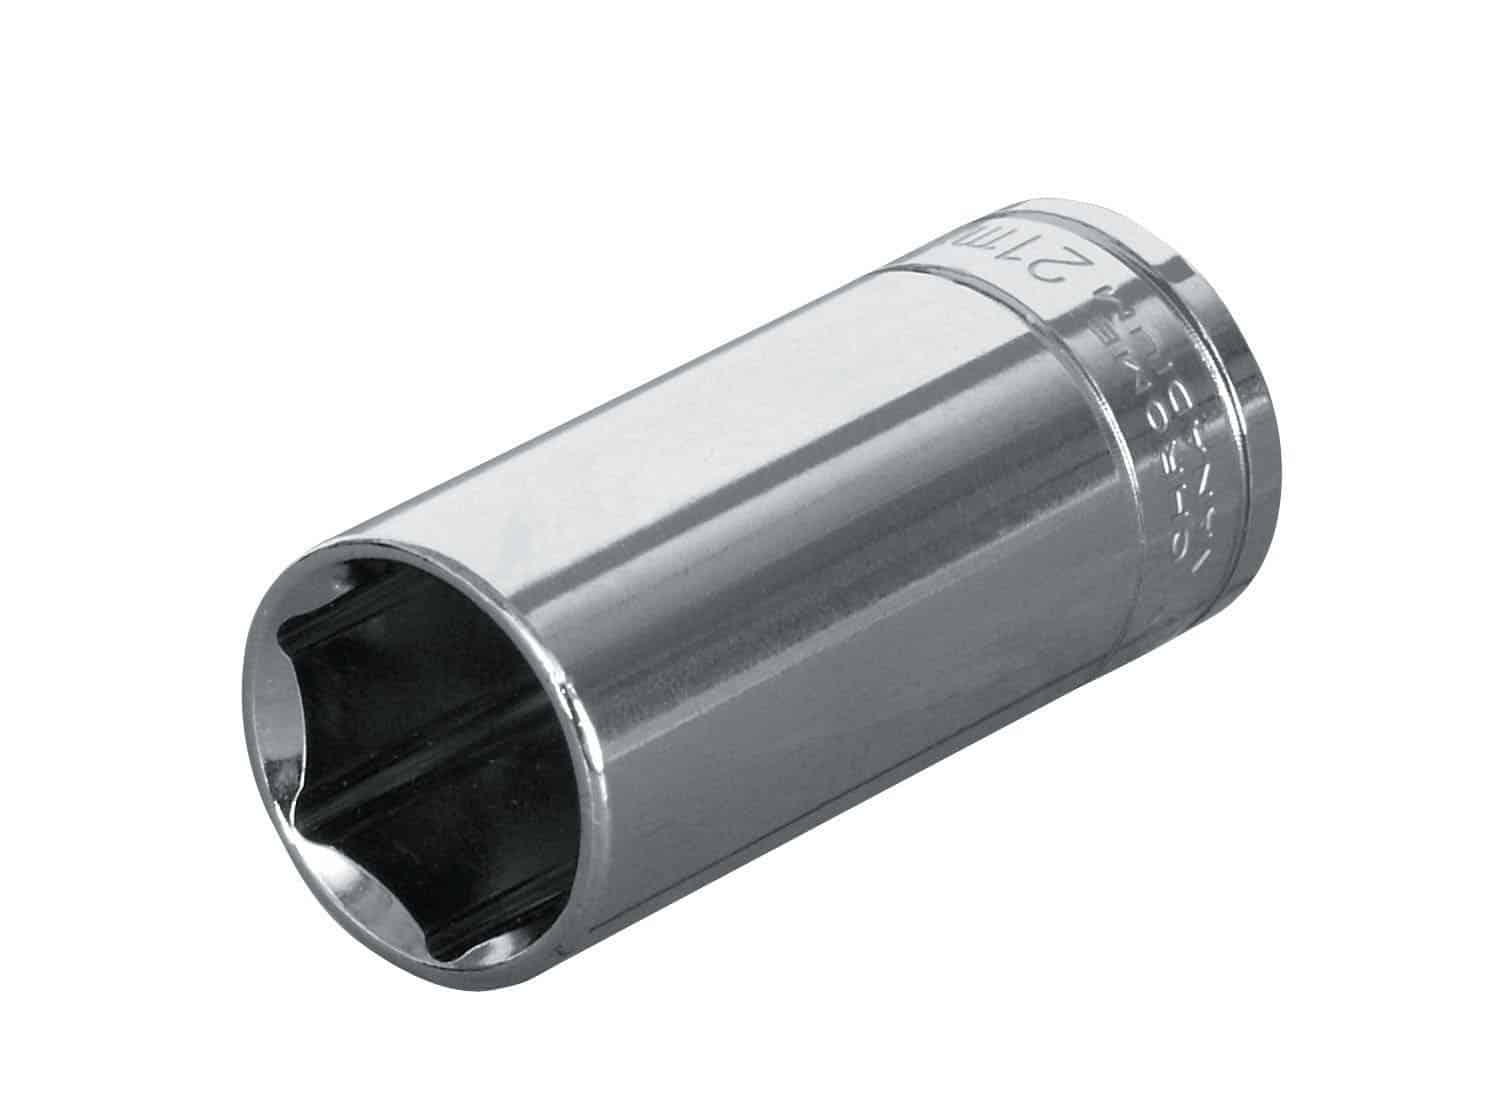 "EXPERT E030219 - 1/4"" Square Drive Metric Long 12Pt Socket 9mm"